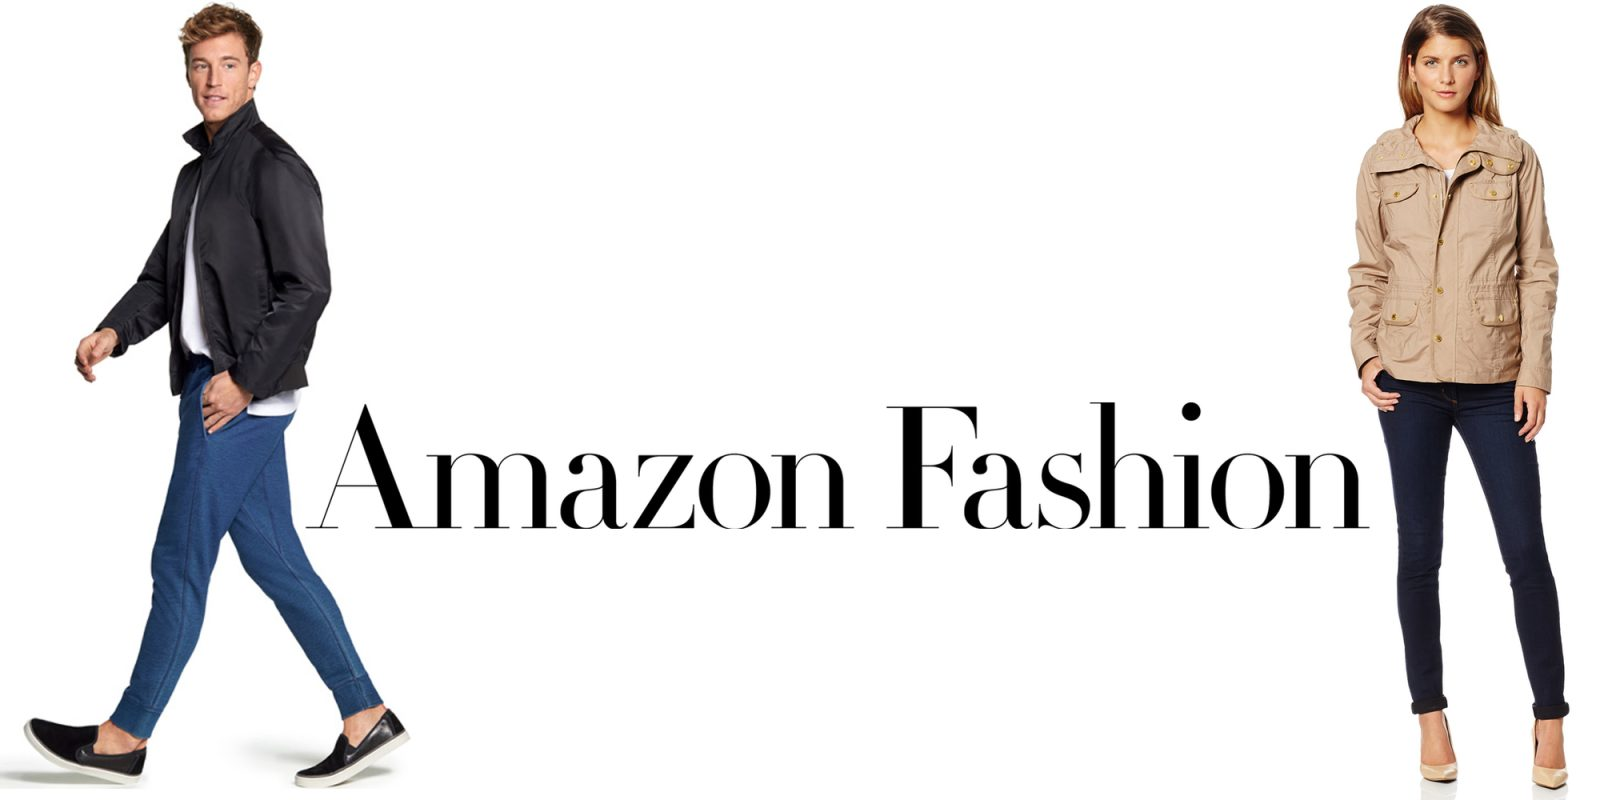 Amazon Could Reach  60B in Apparel Sales   Promo Marketing